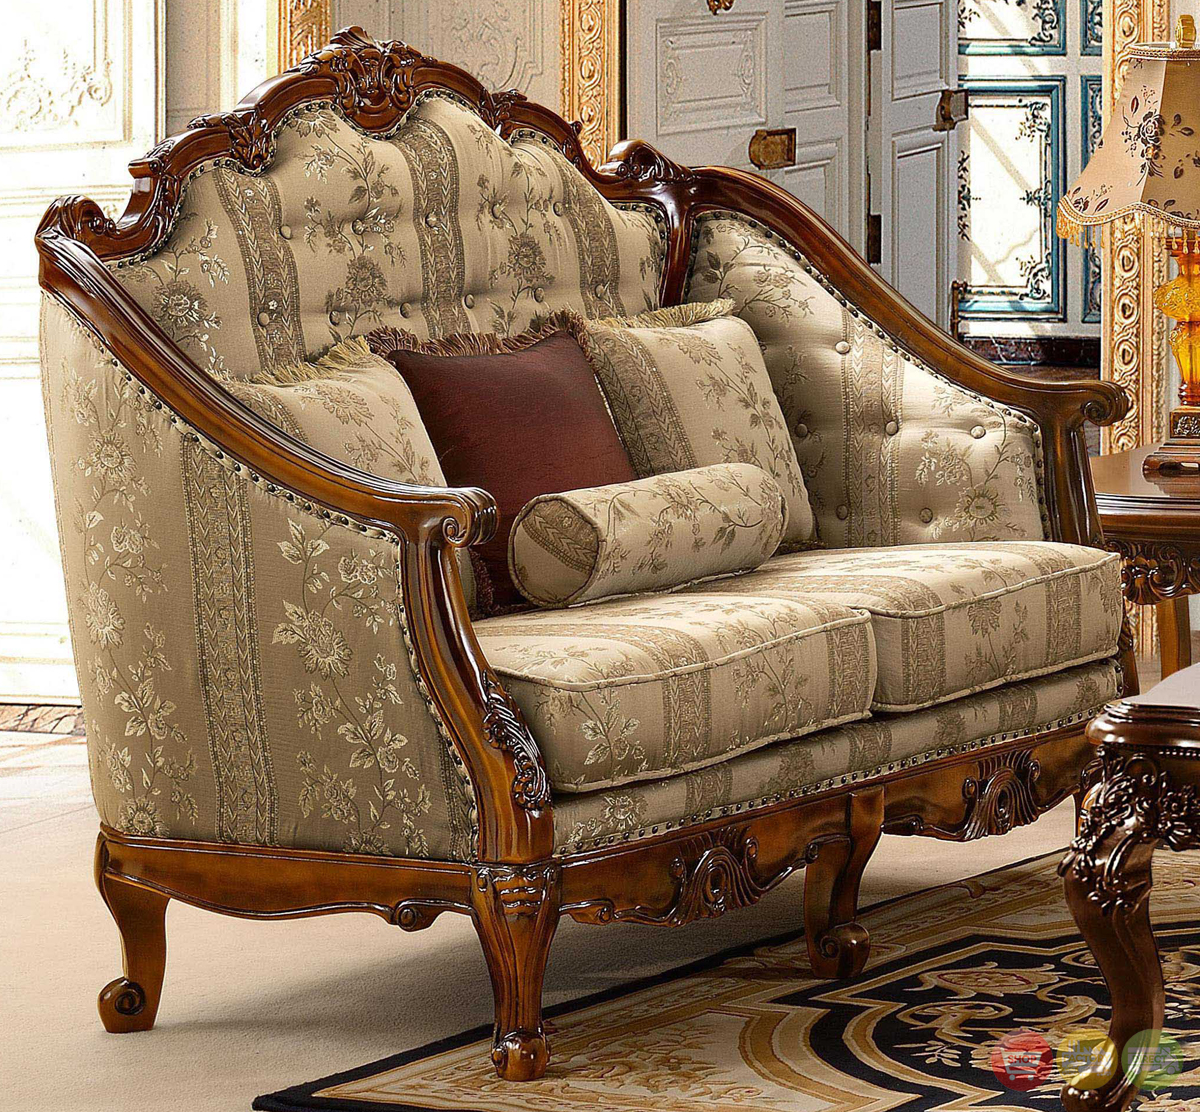 chair antique styles modern wingback chairs uk style luxury formal living room furniture set hd 953